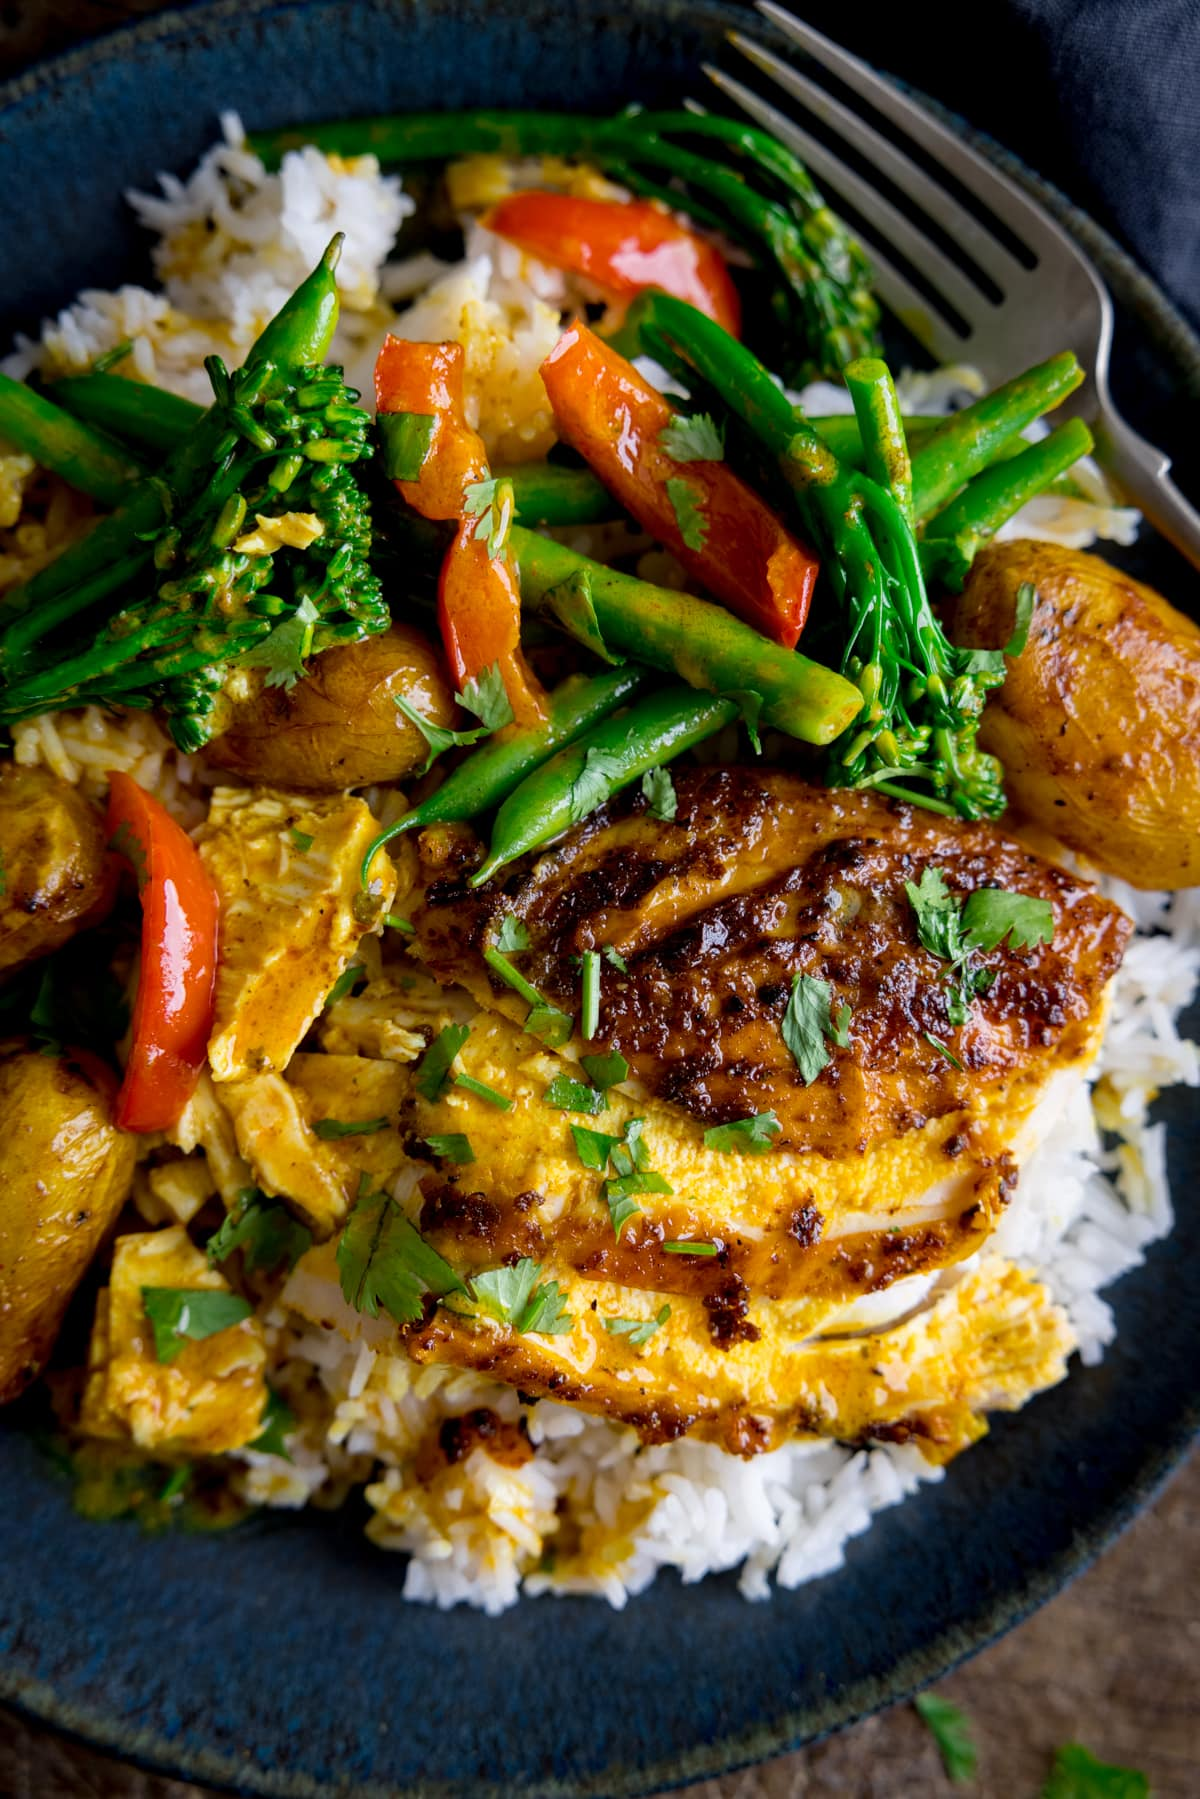 Slices of curry roast chicken on top of boiled rice with vegetables, all on a dark plate